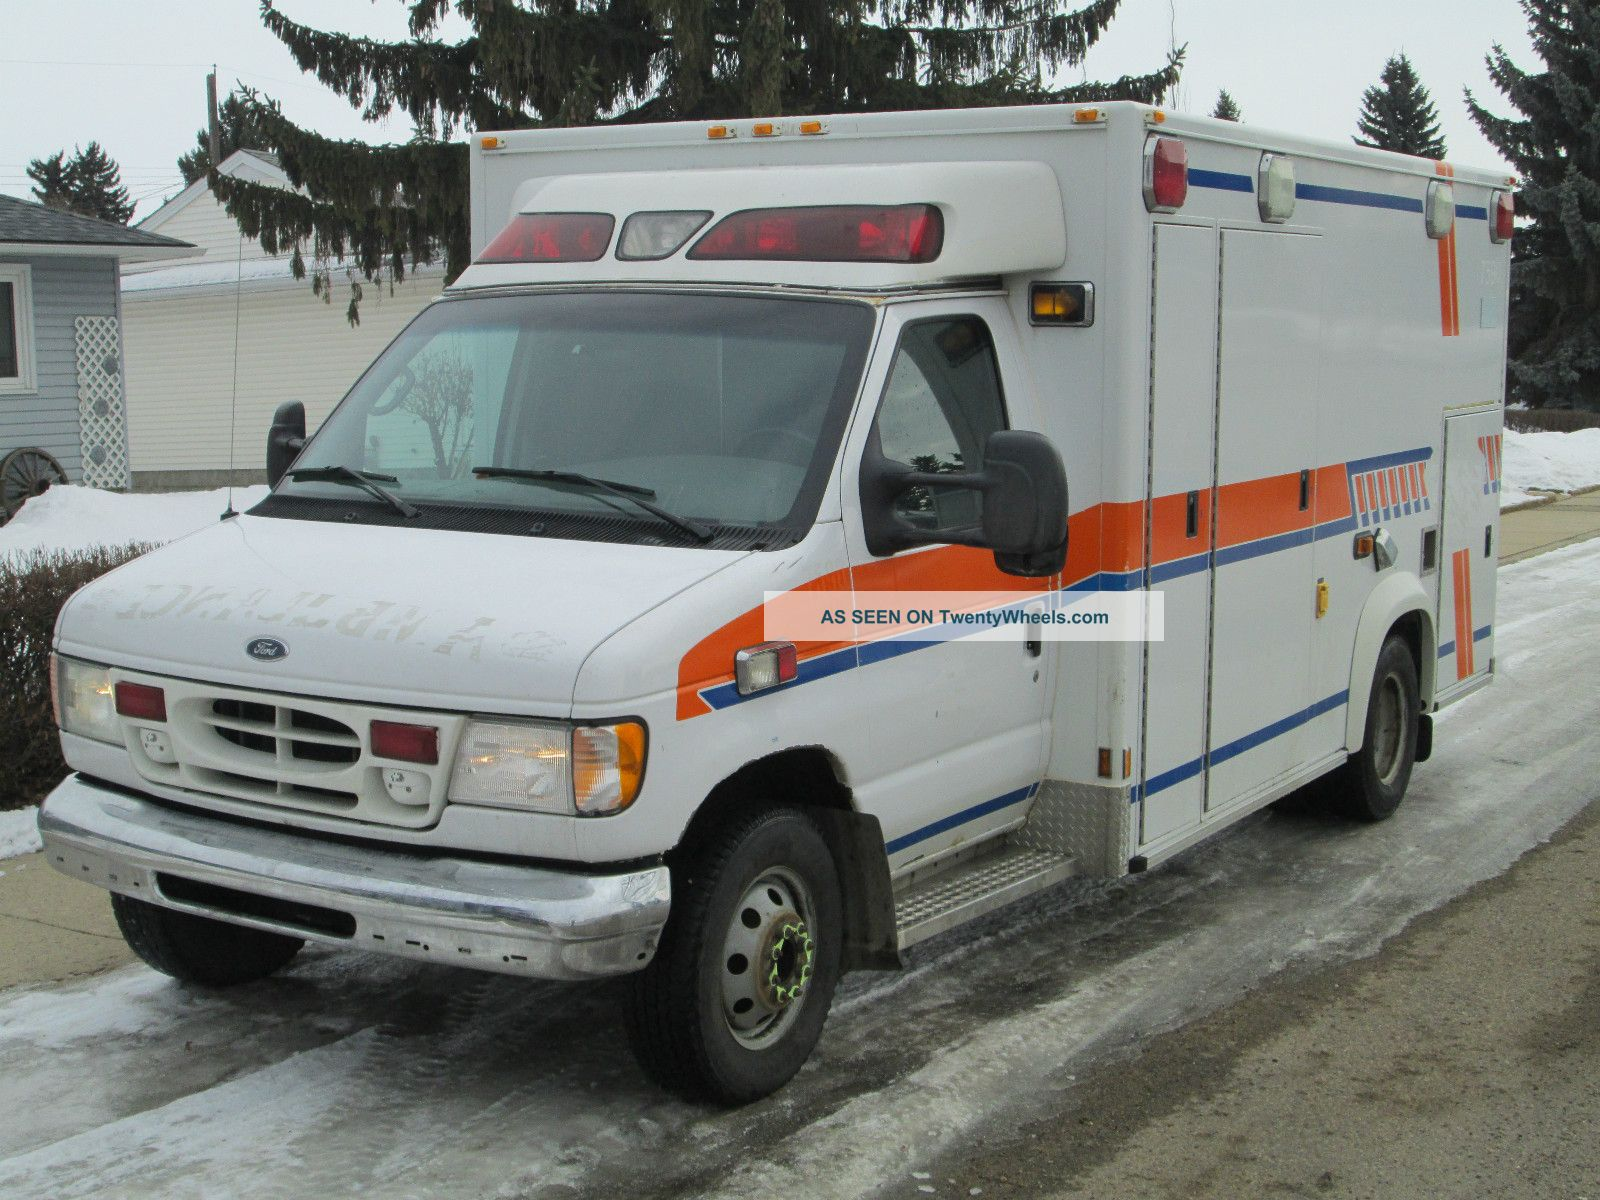 2002 Ford E - 450 Diesel Ambulance - Emergency Vehicle Emergency & Fire Trucks photo